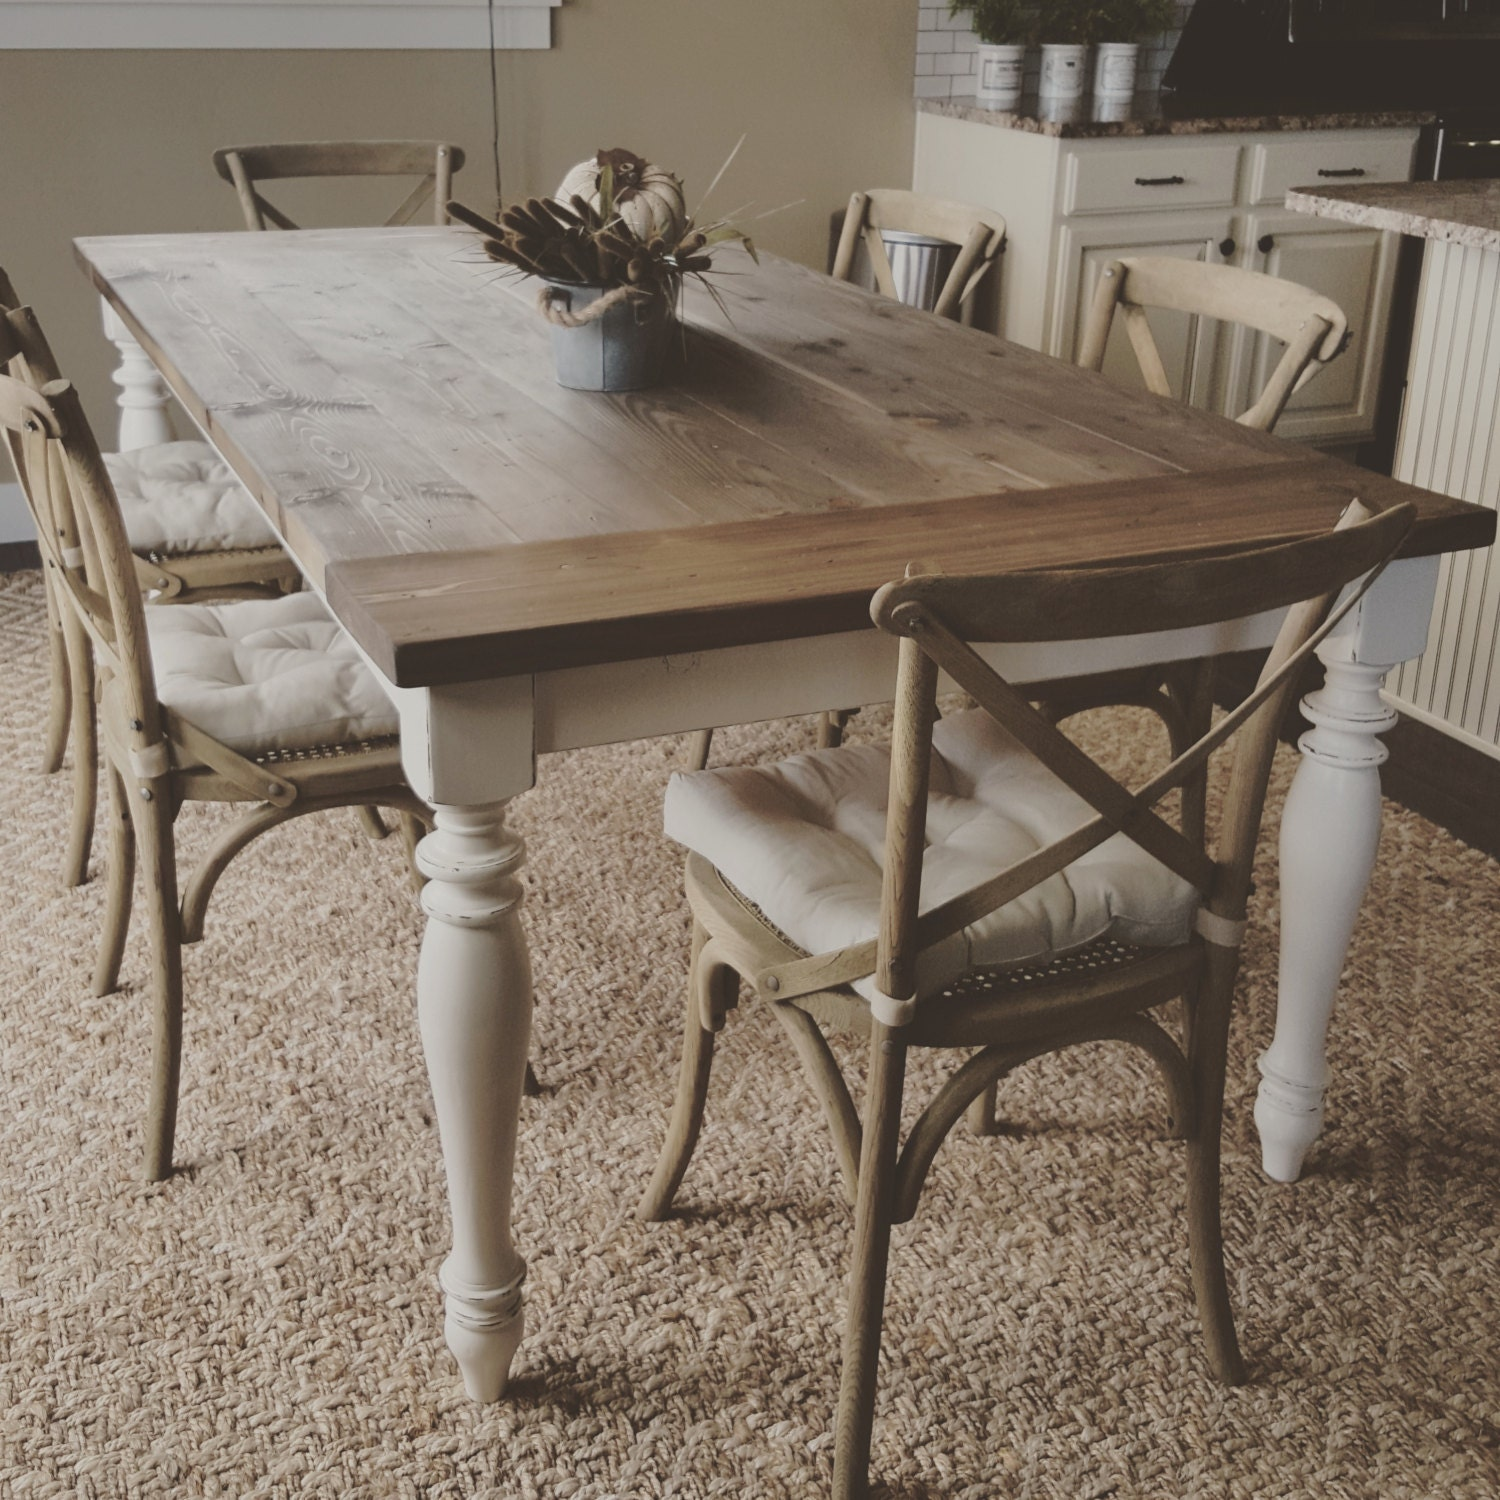 Gorgeous handmade rustic farmhouse table dinning table for Rustic farm tables for sale